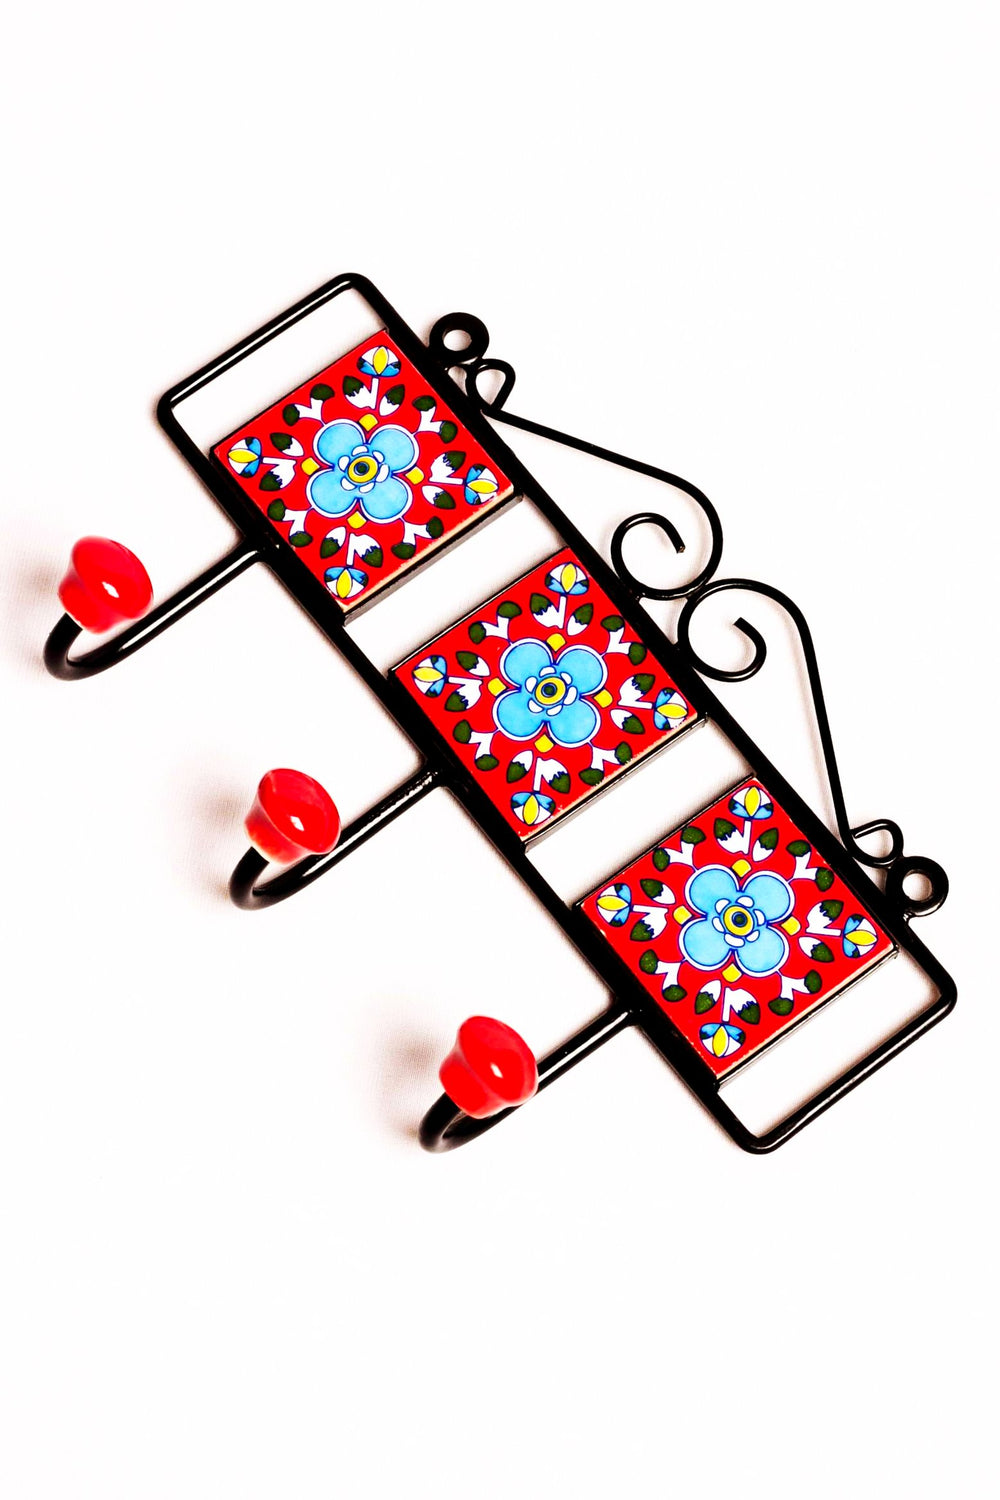 Metal and three square ceramic tile with a 3 peg wall hook, red with blue and white floral motif